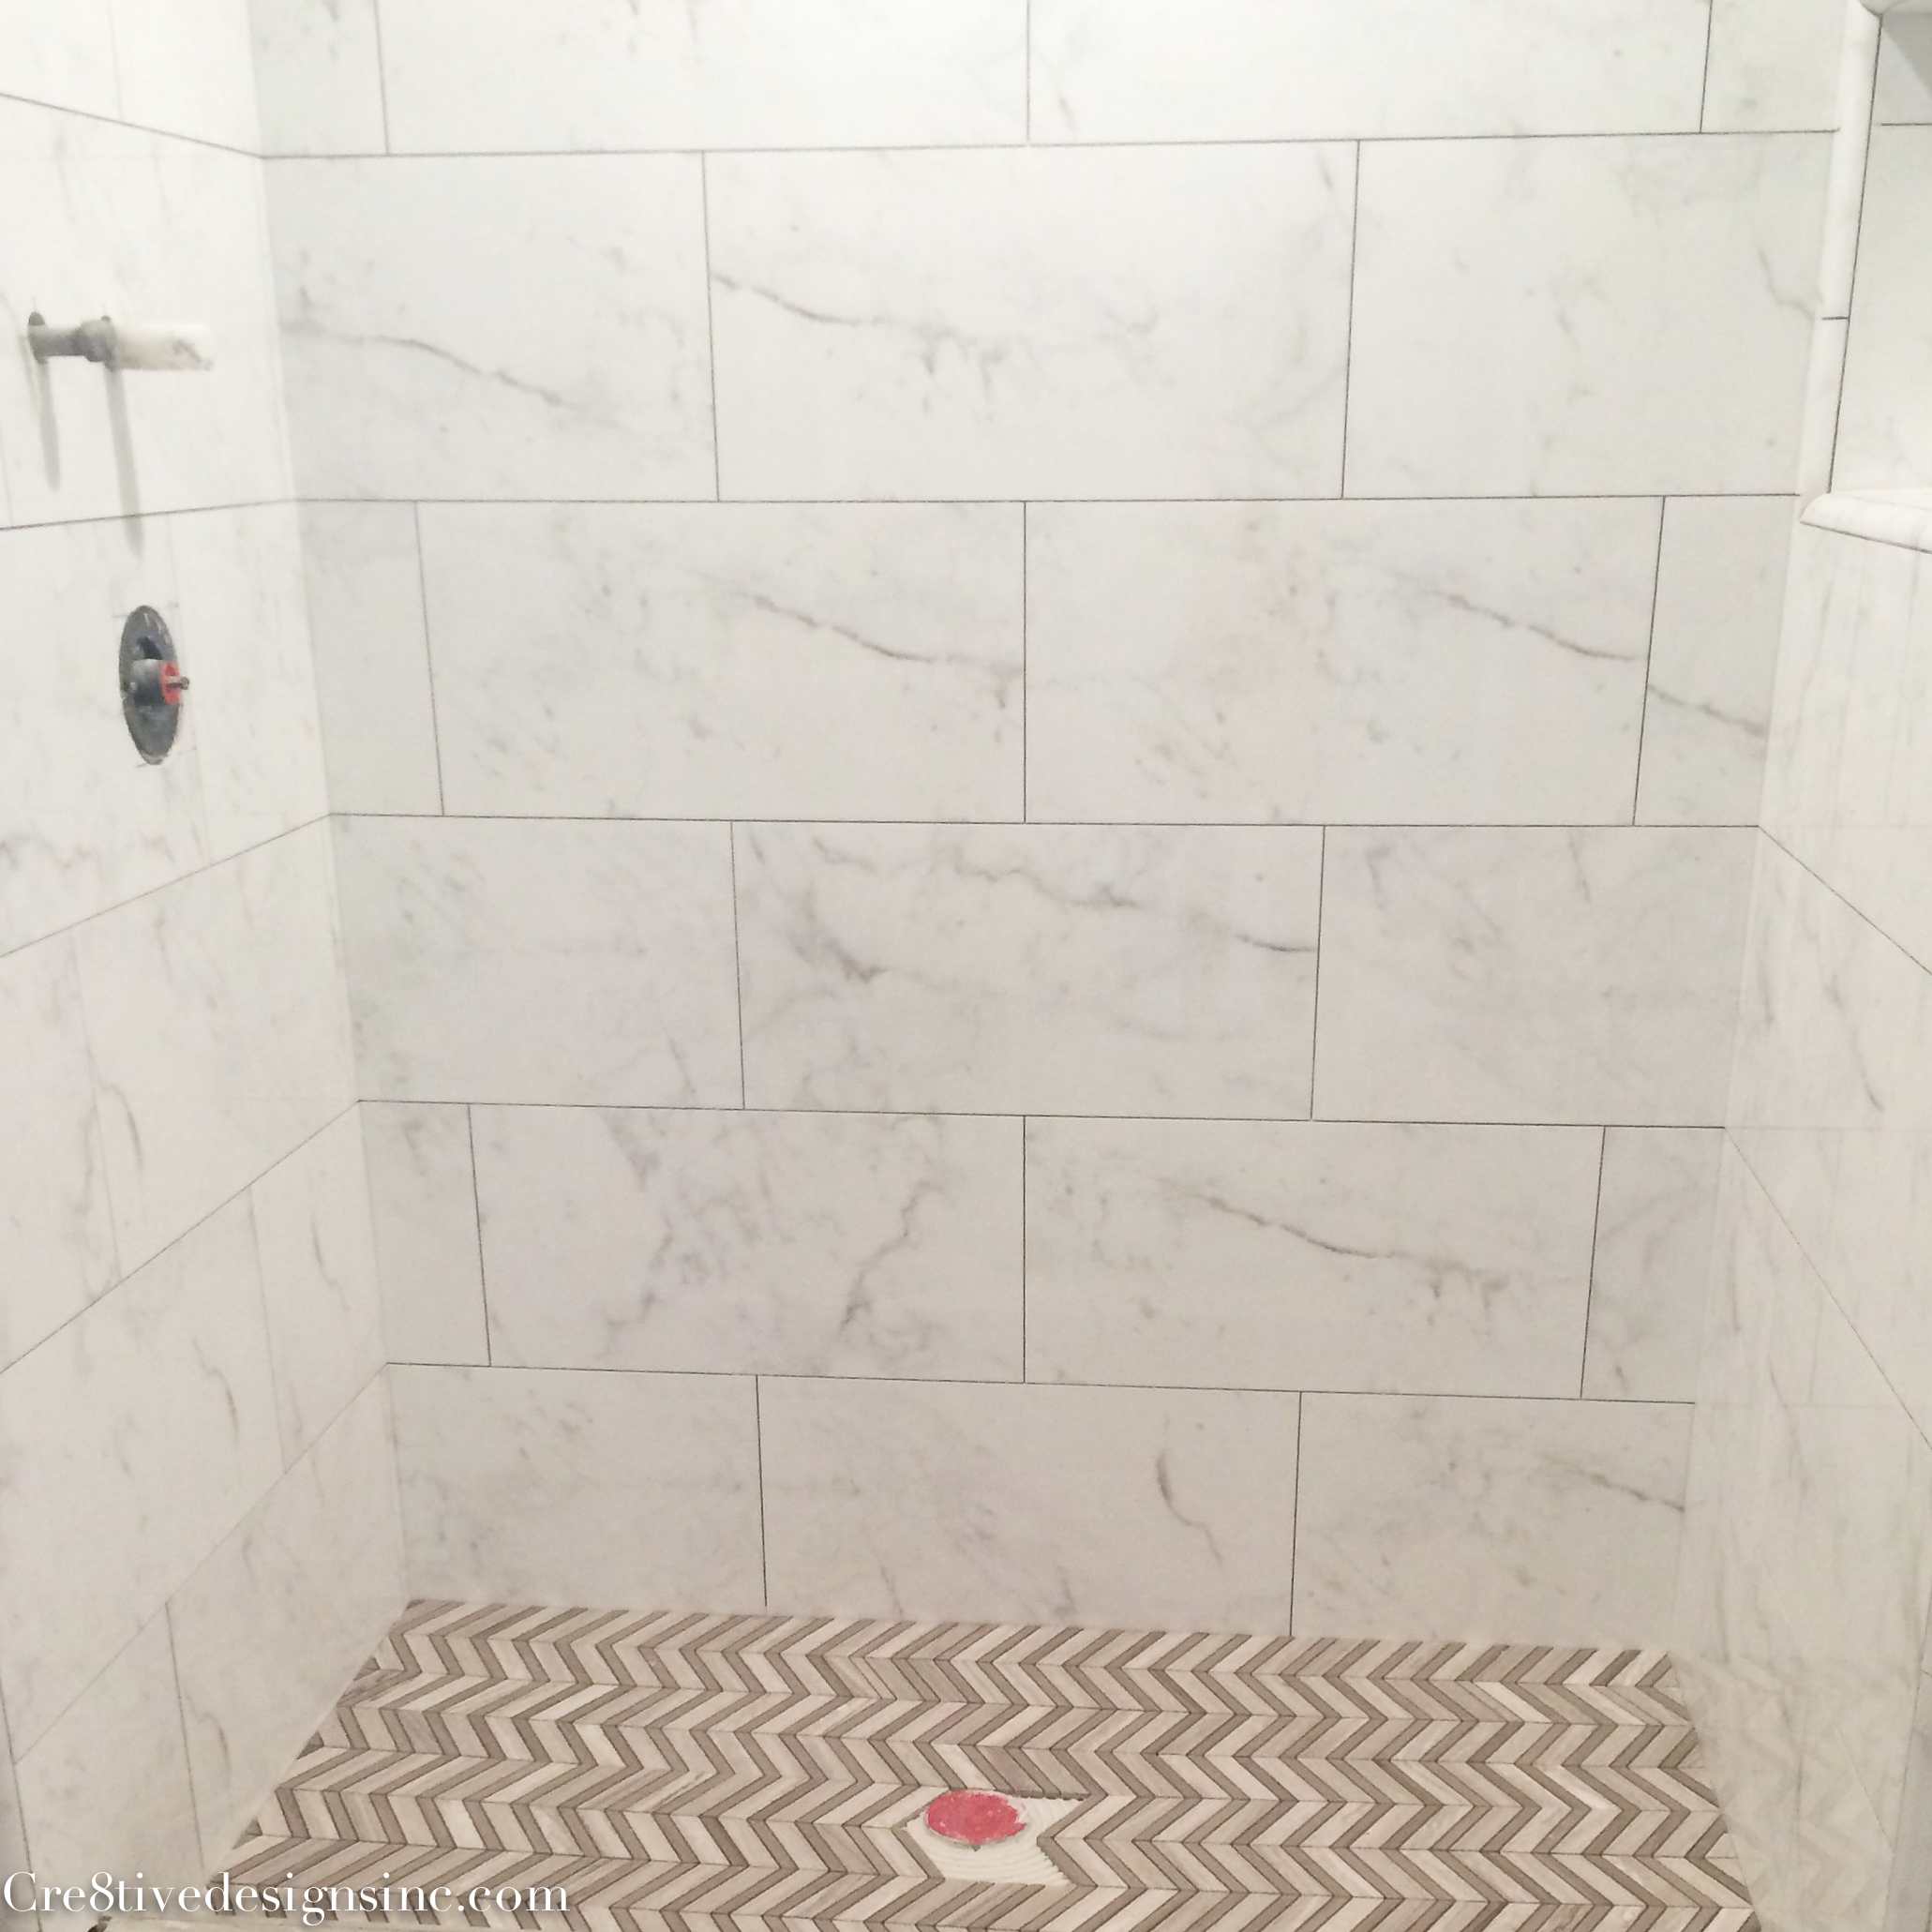 When tile goes wrong cre8tive designs inc calcutta marble look tiles dailygadgetfo Gallery